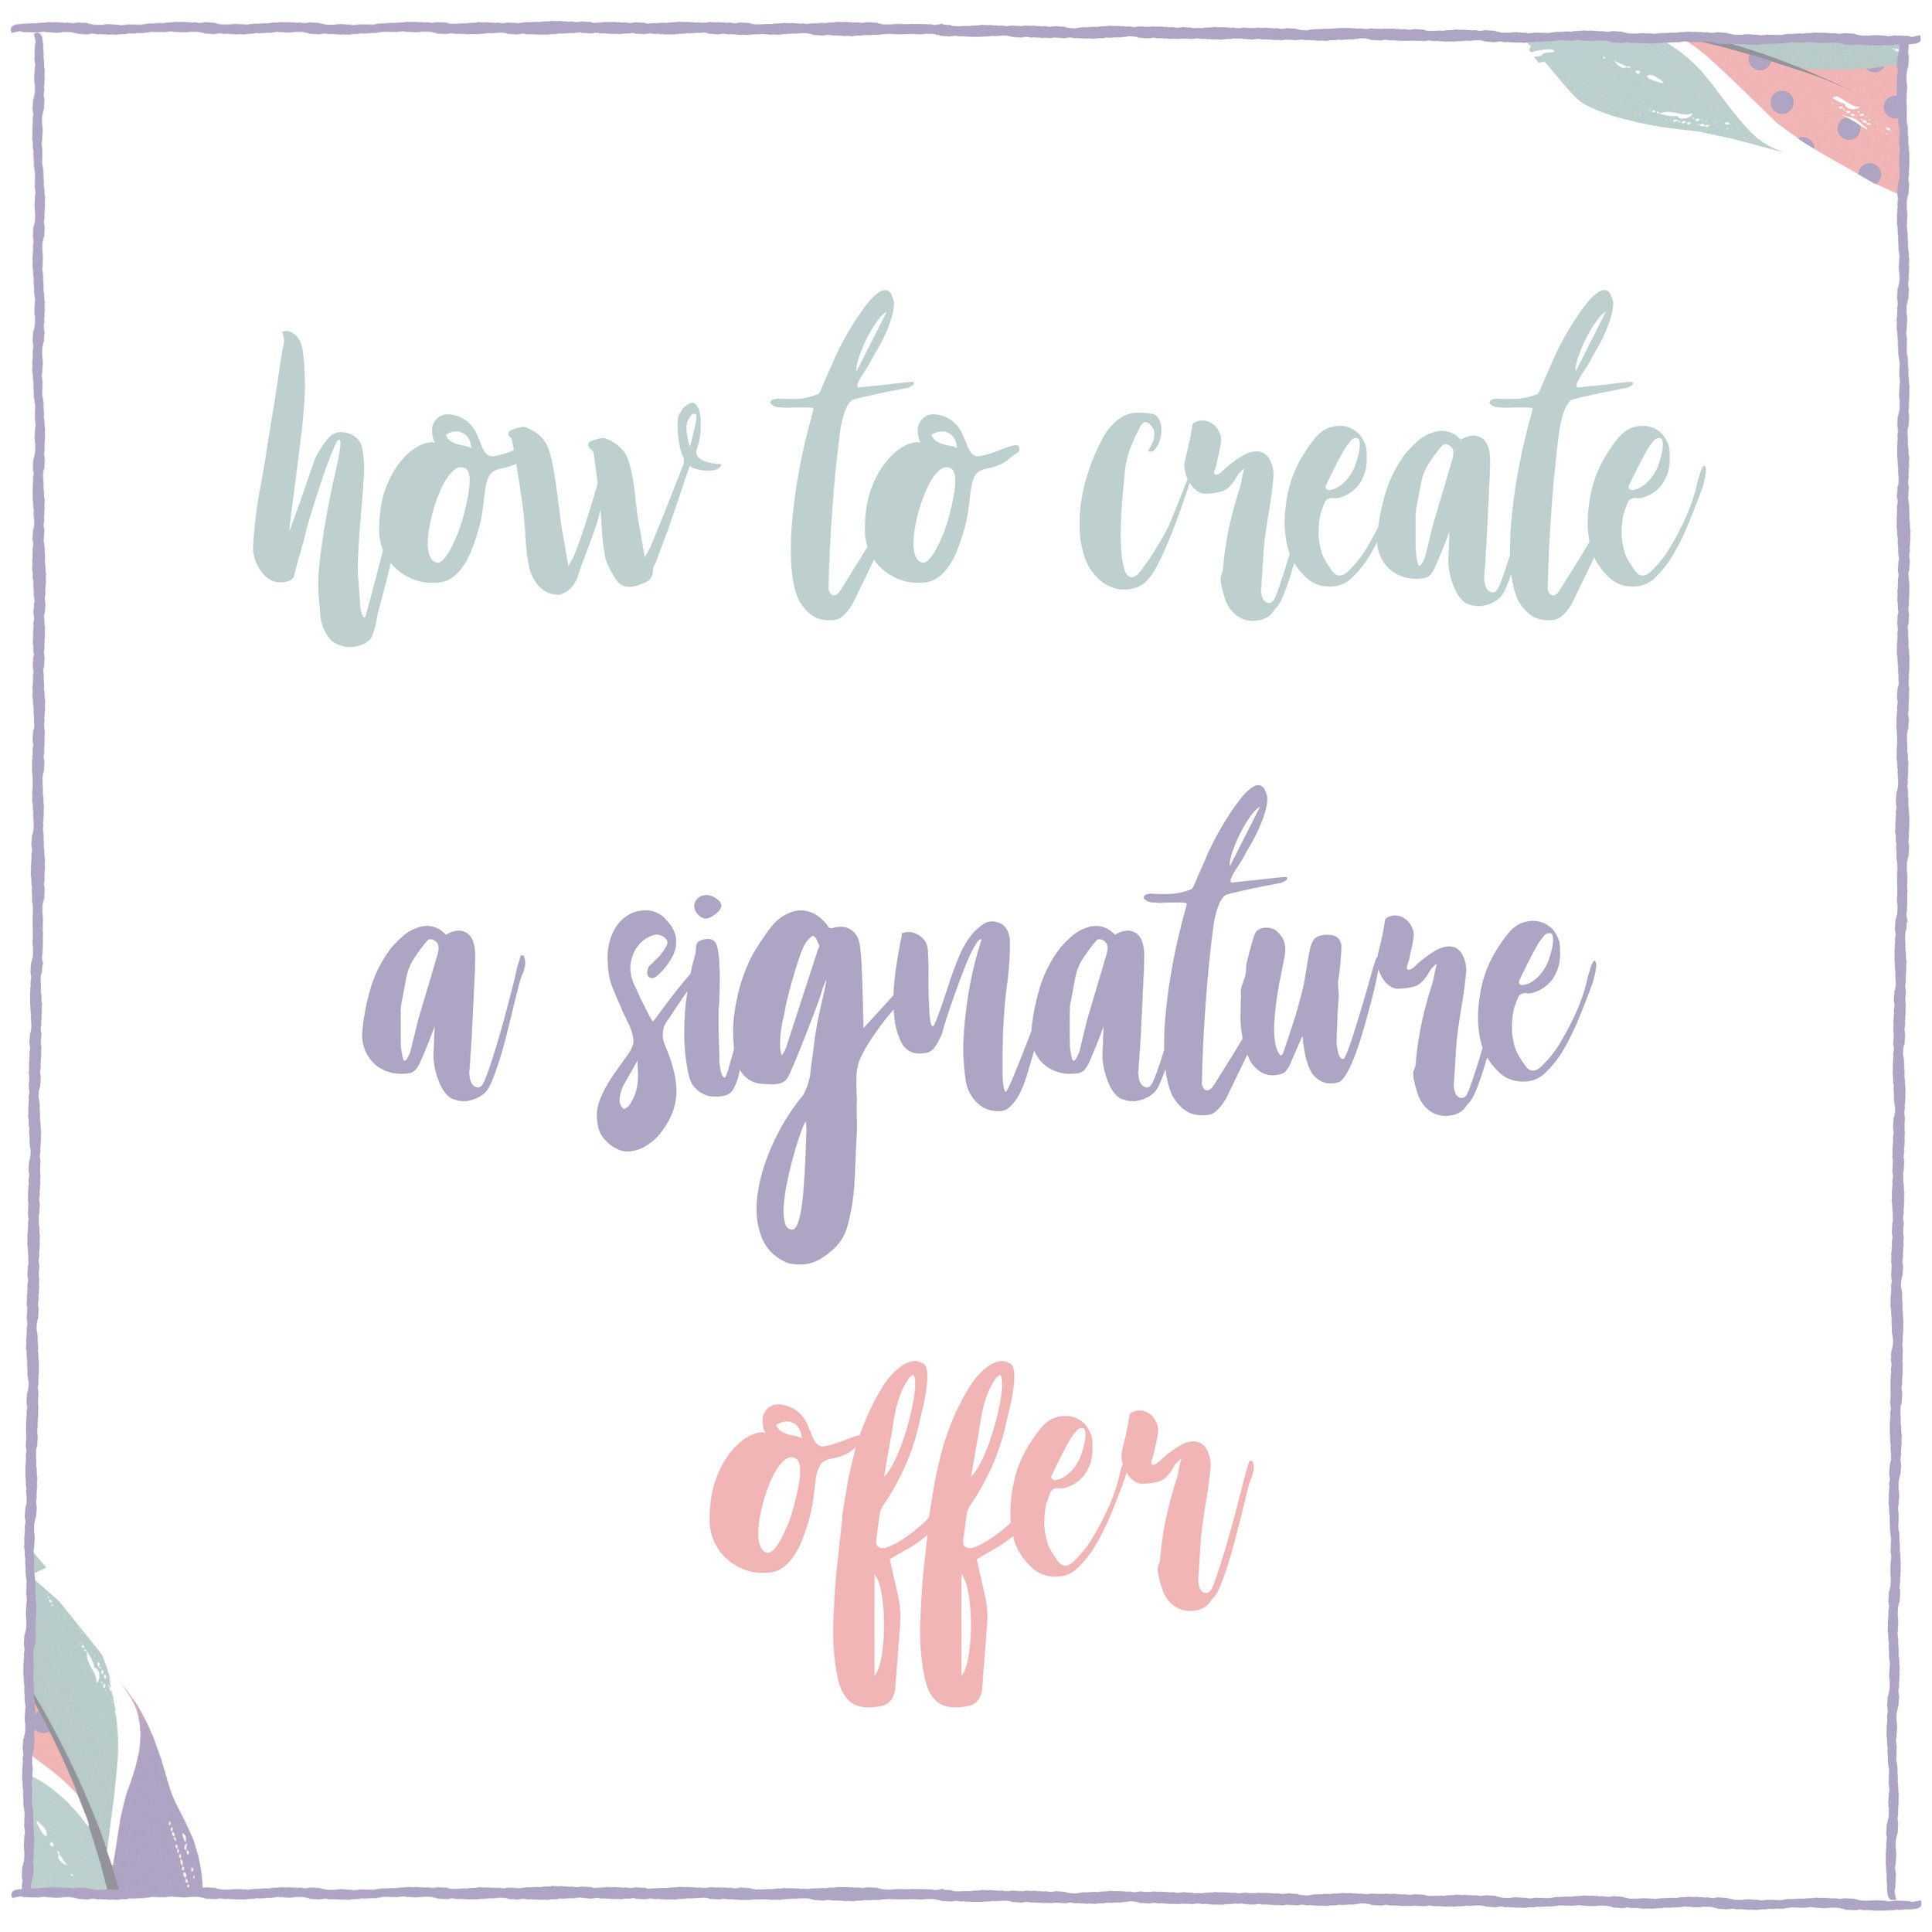 How to Create a Signature Offer.jpg